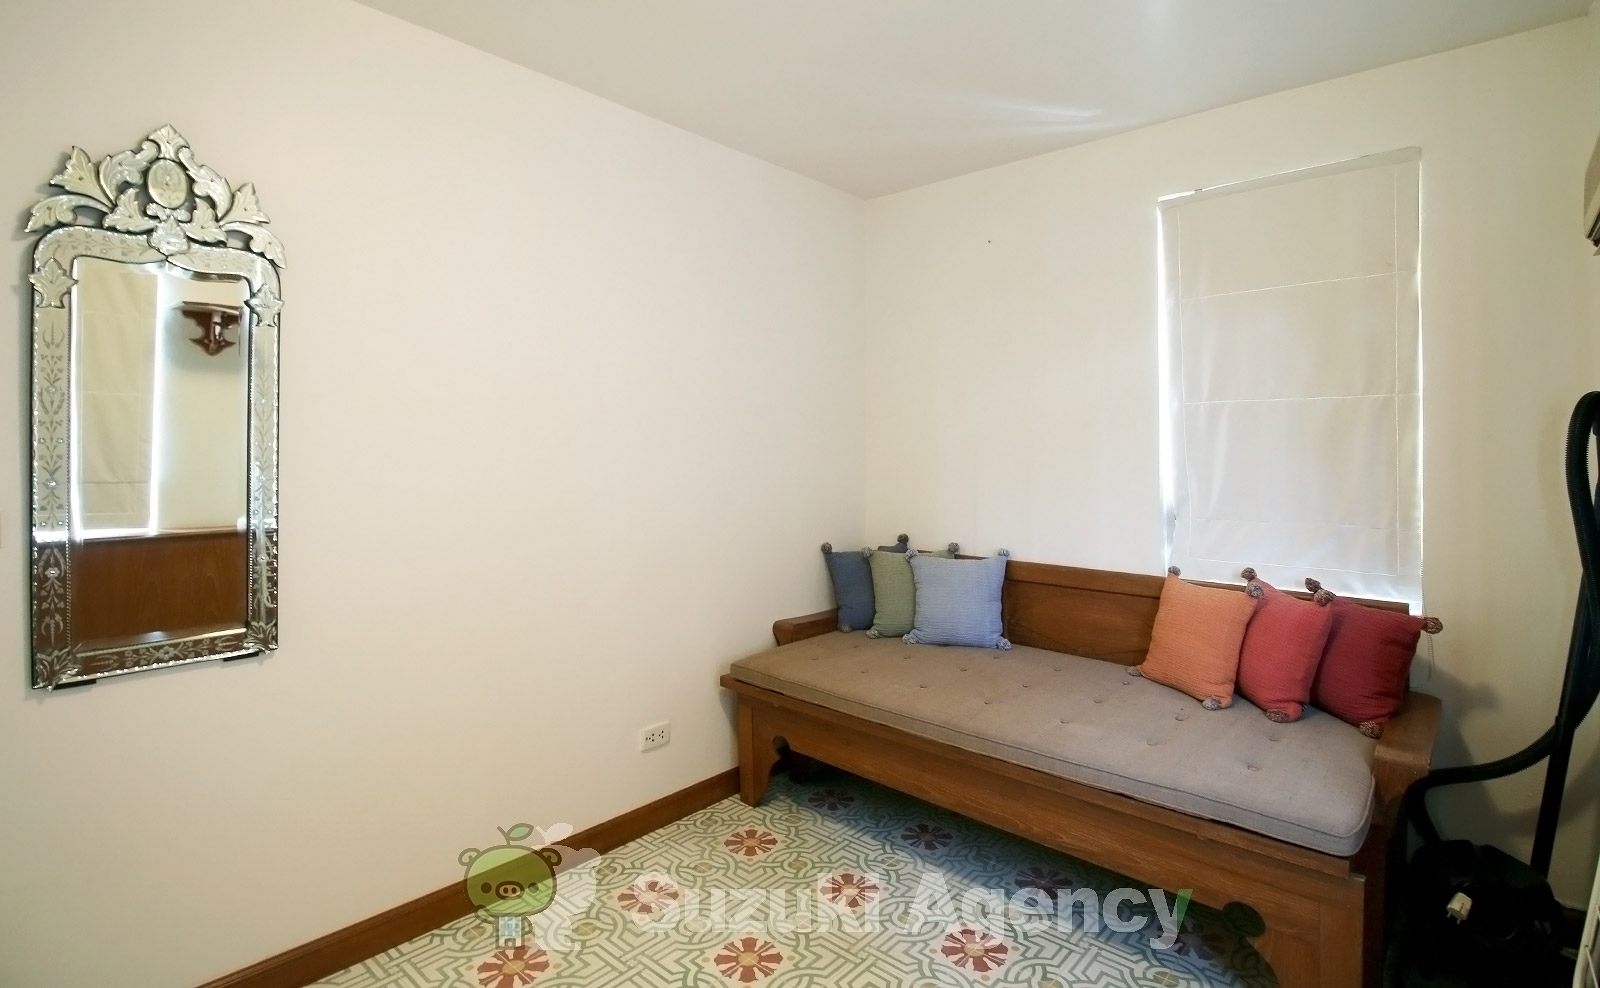 Raintree Villa:2Bed Room Photos No.11